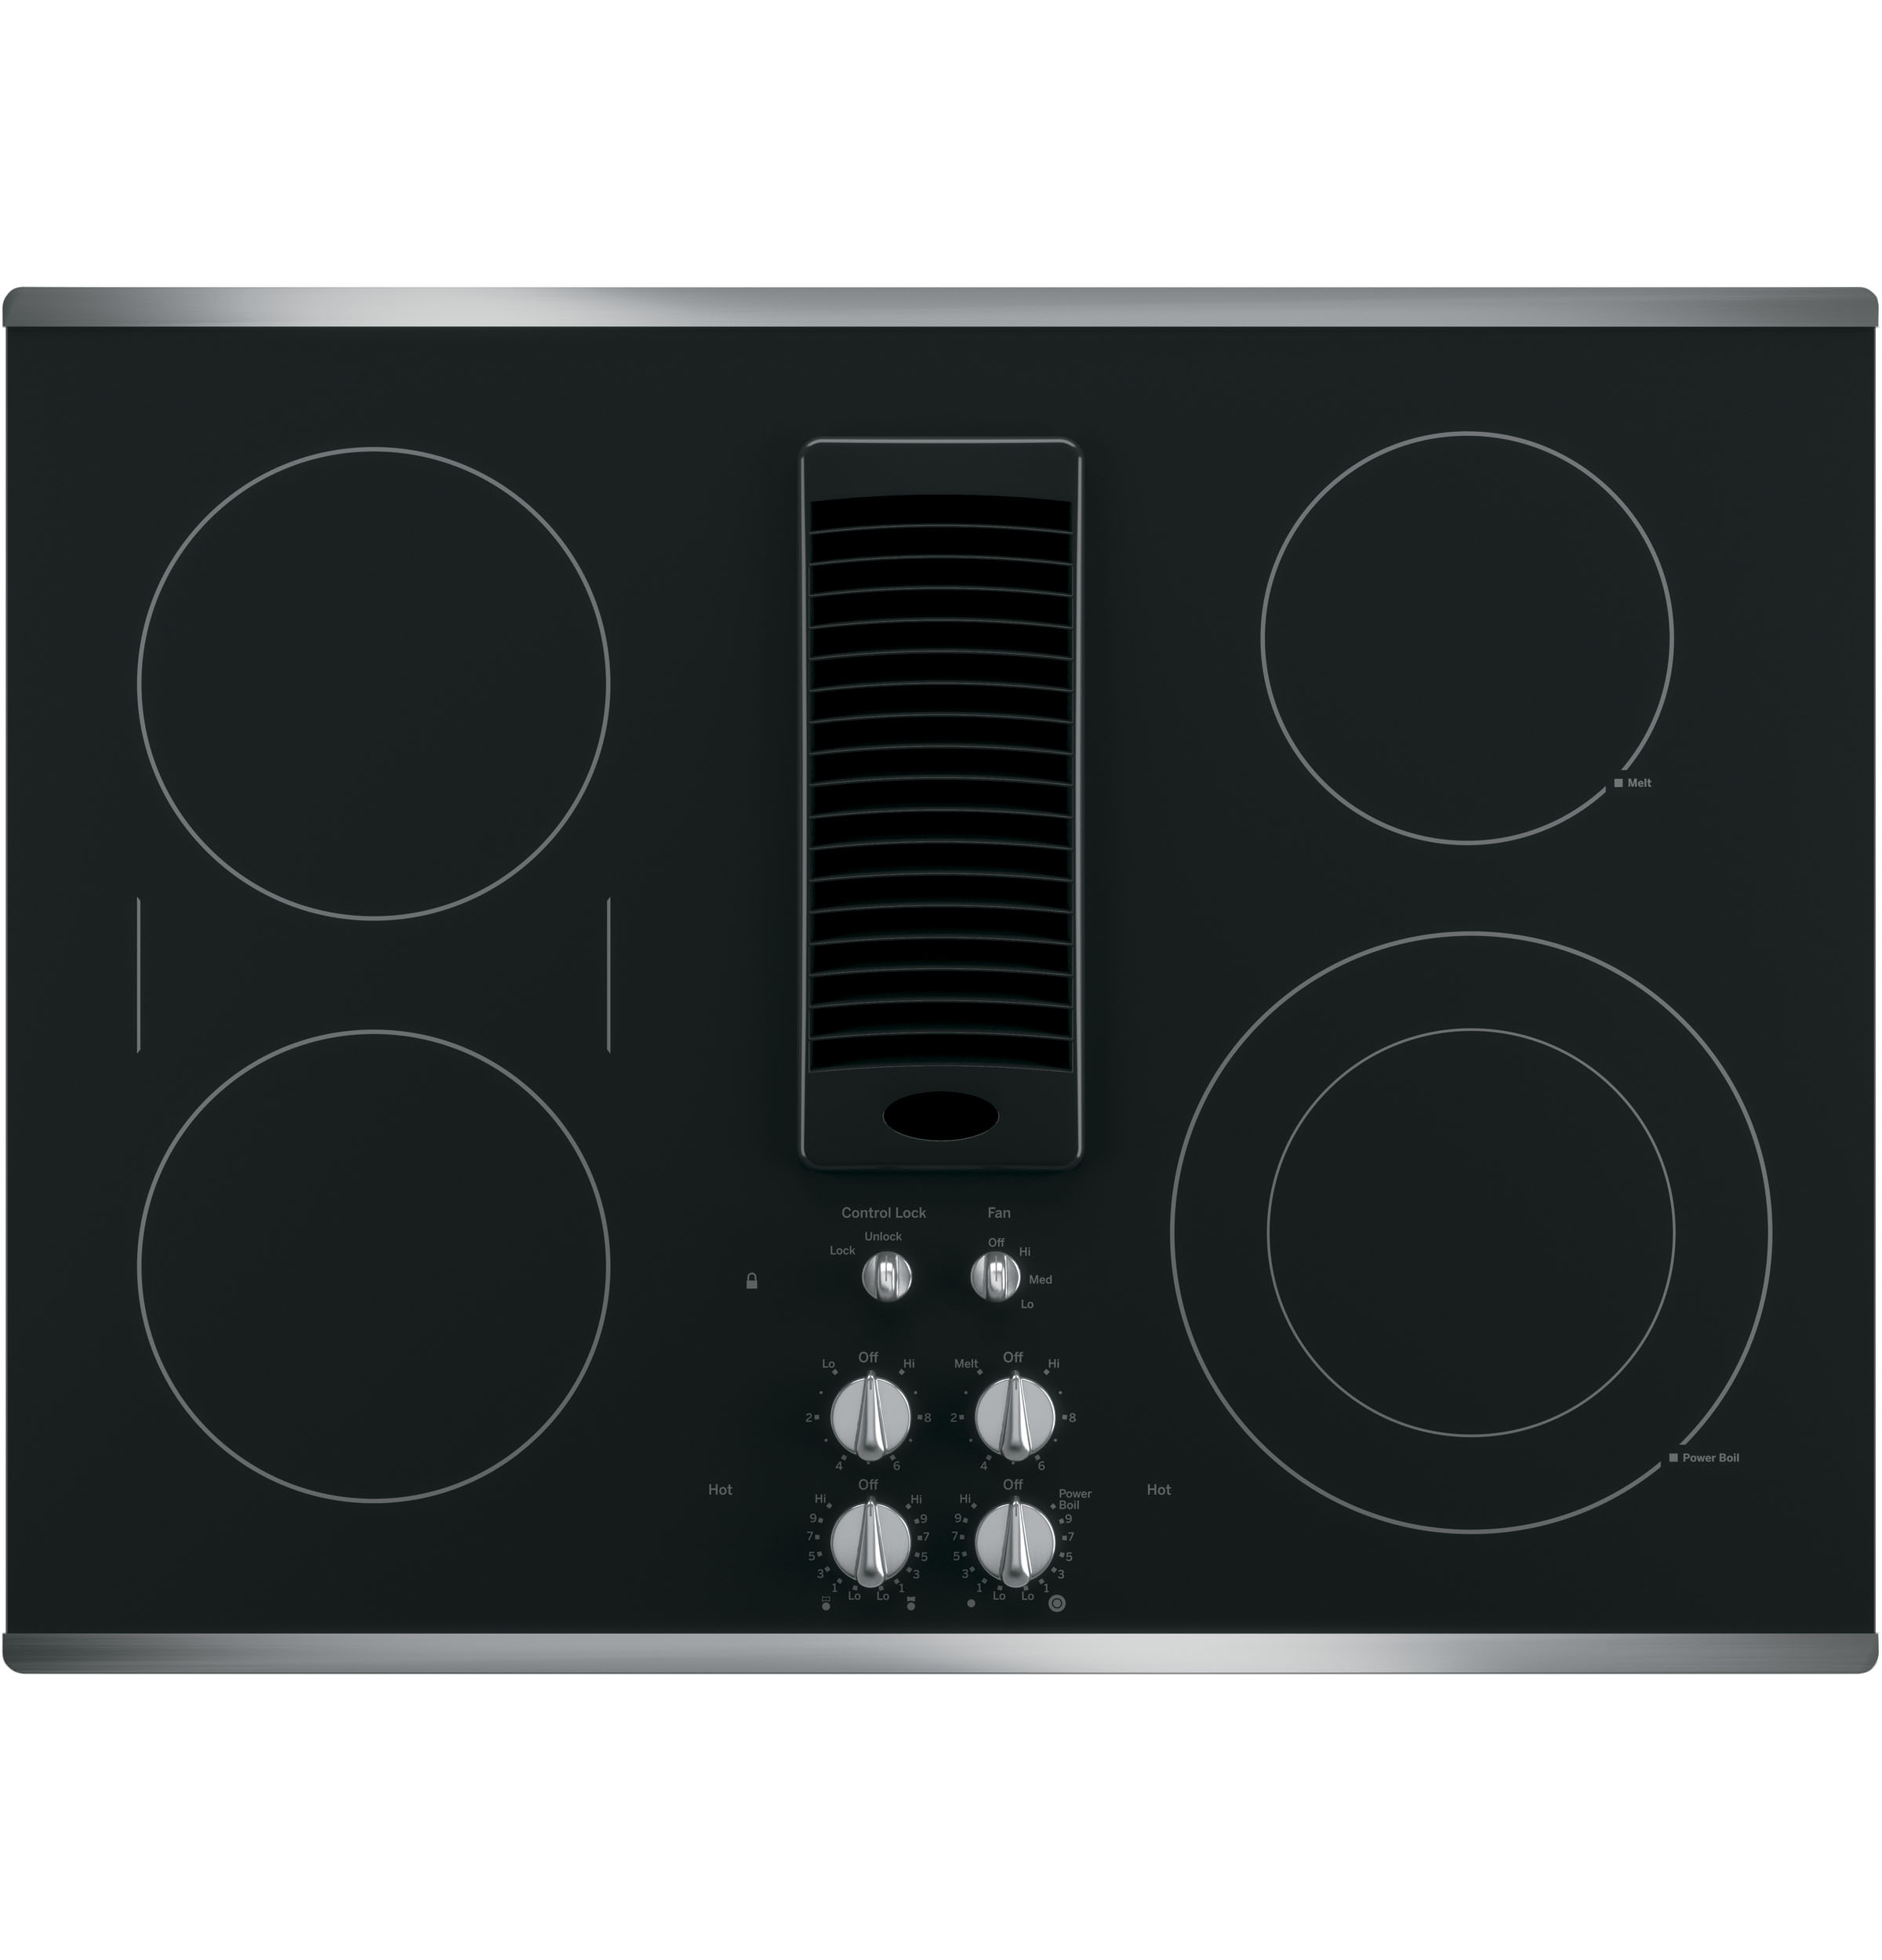 "GE Profile 30"" Built-In Electric Downdraft Cooktop Black Glass Top with Stainless Steel Trim"